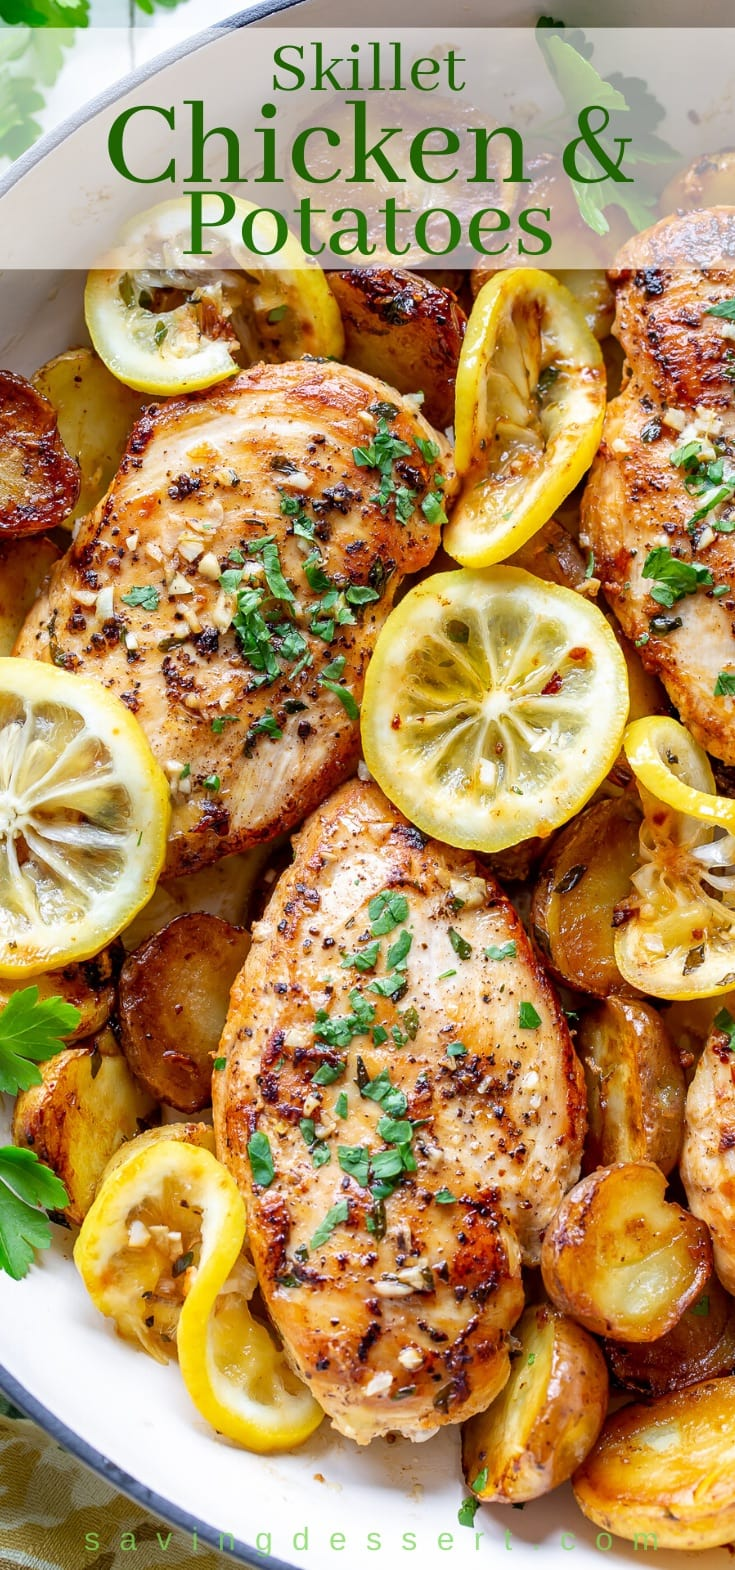 Chicken breasts with lemon, garlic, butter and potatoes